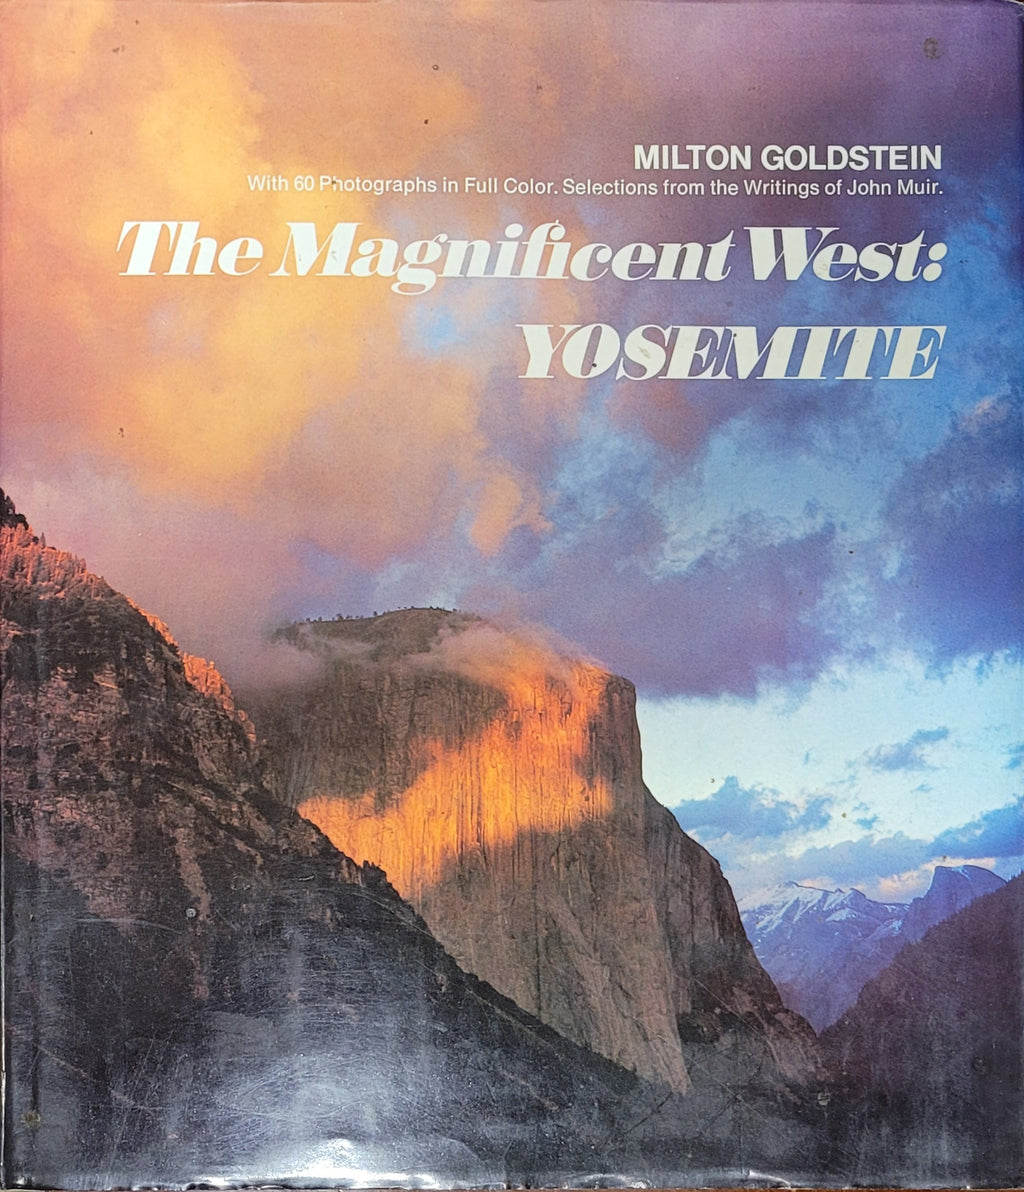 Vintage Book: The Magnificent West: Yosemite